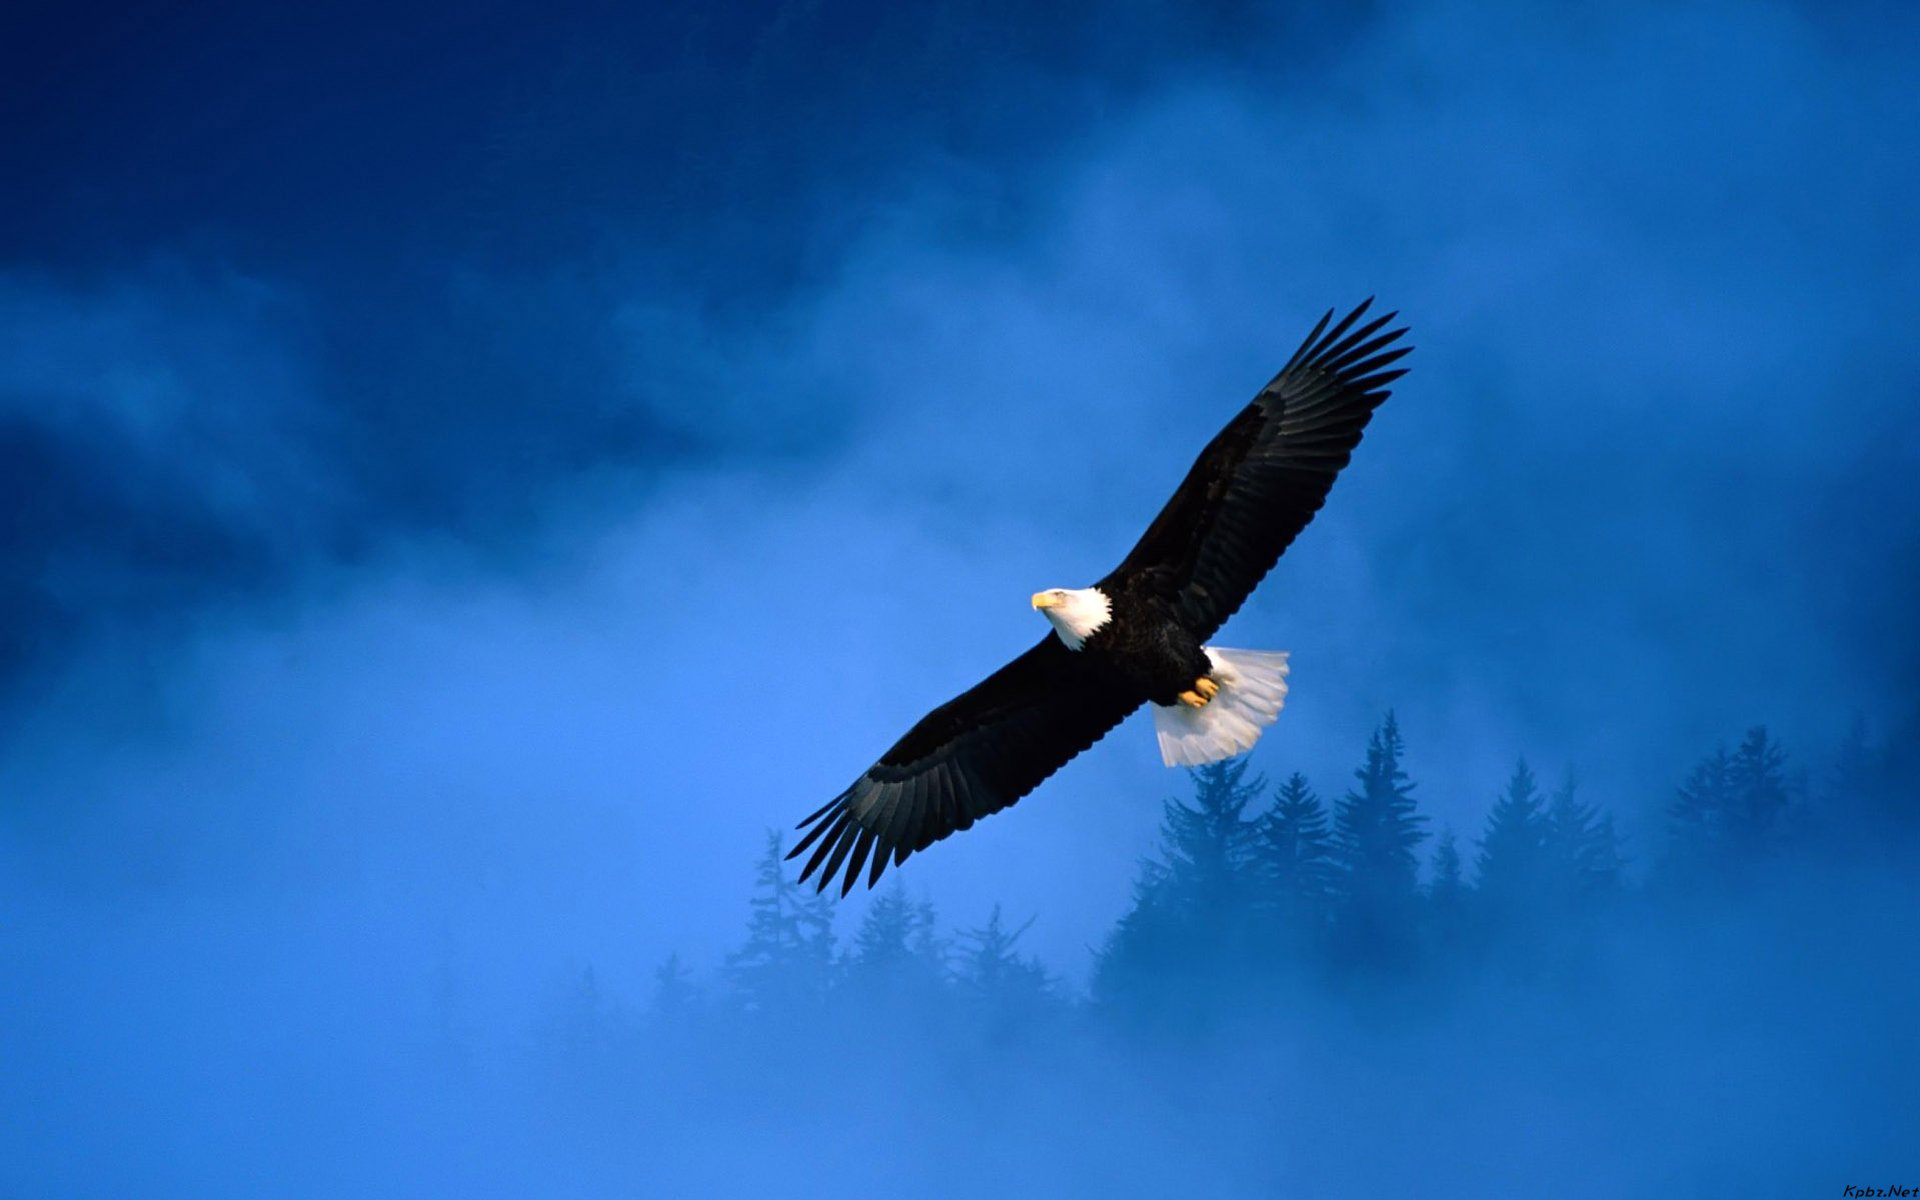 Image: http://www.desktopwallpaperhd.net/wallpapers/9/4/eagle-bird-sky-92580.jpg